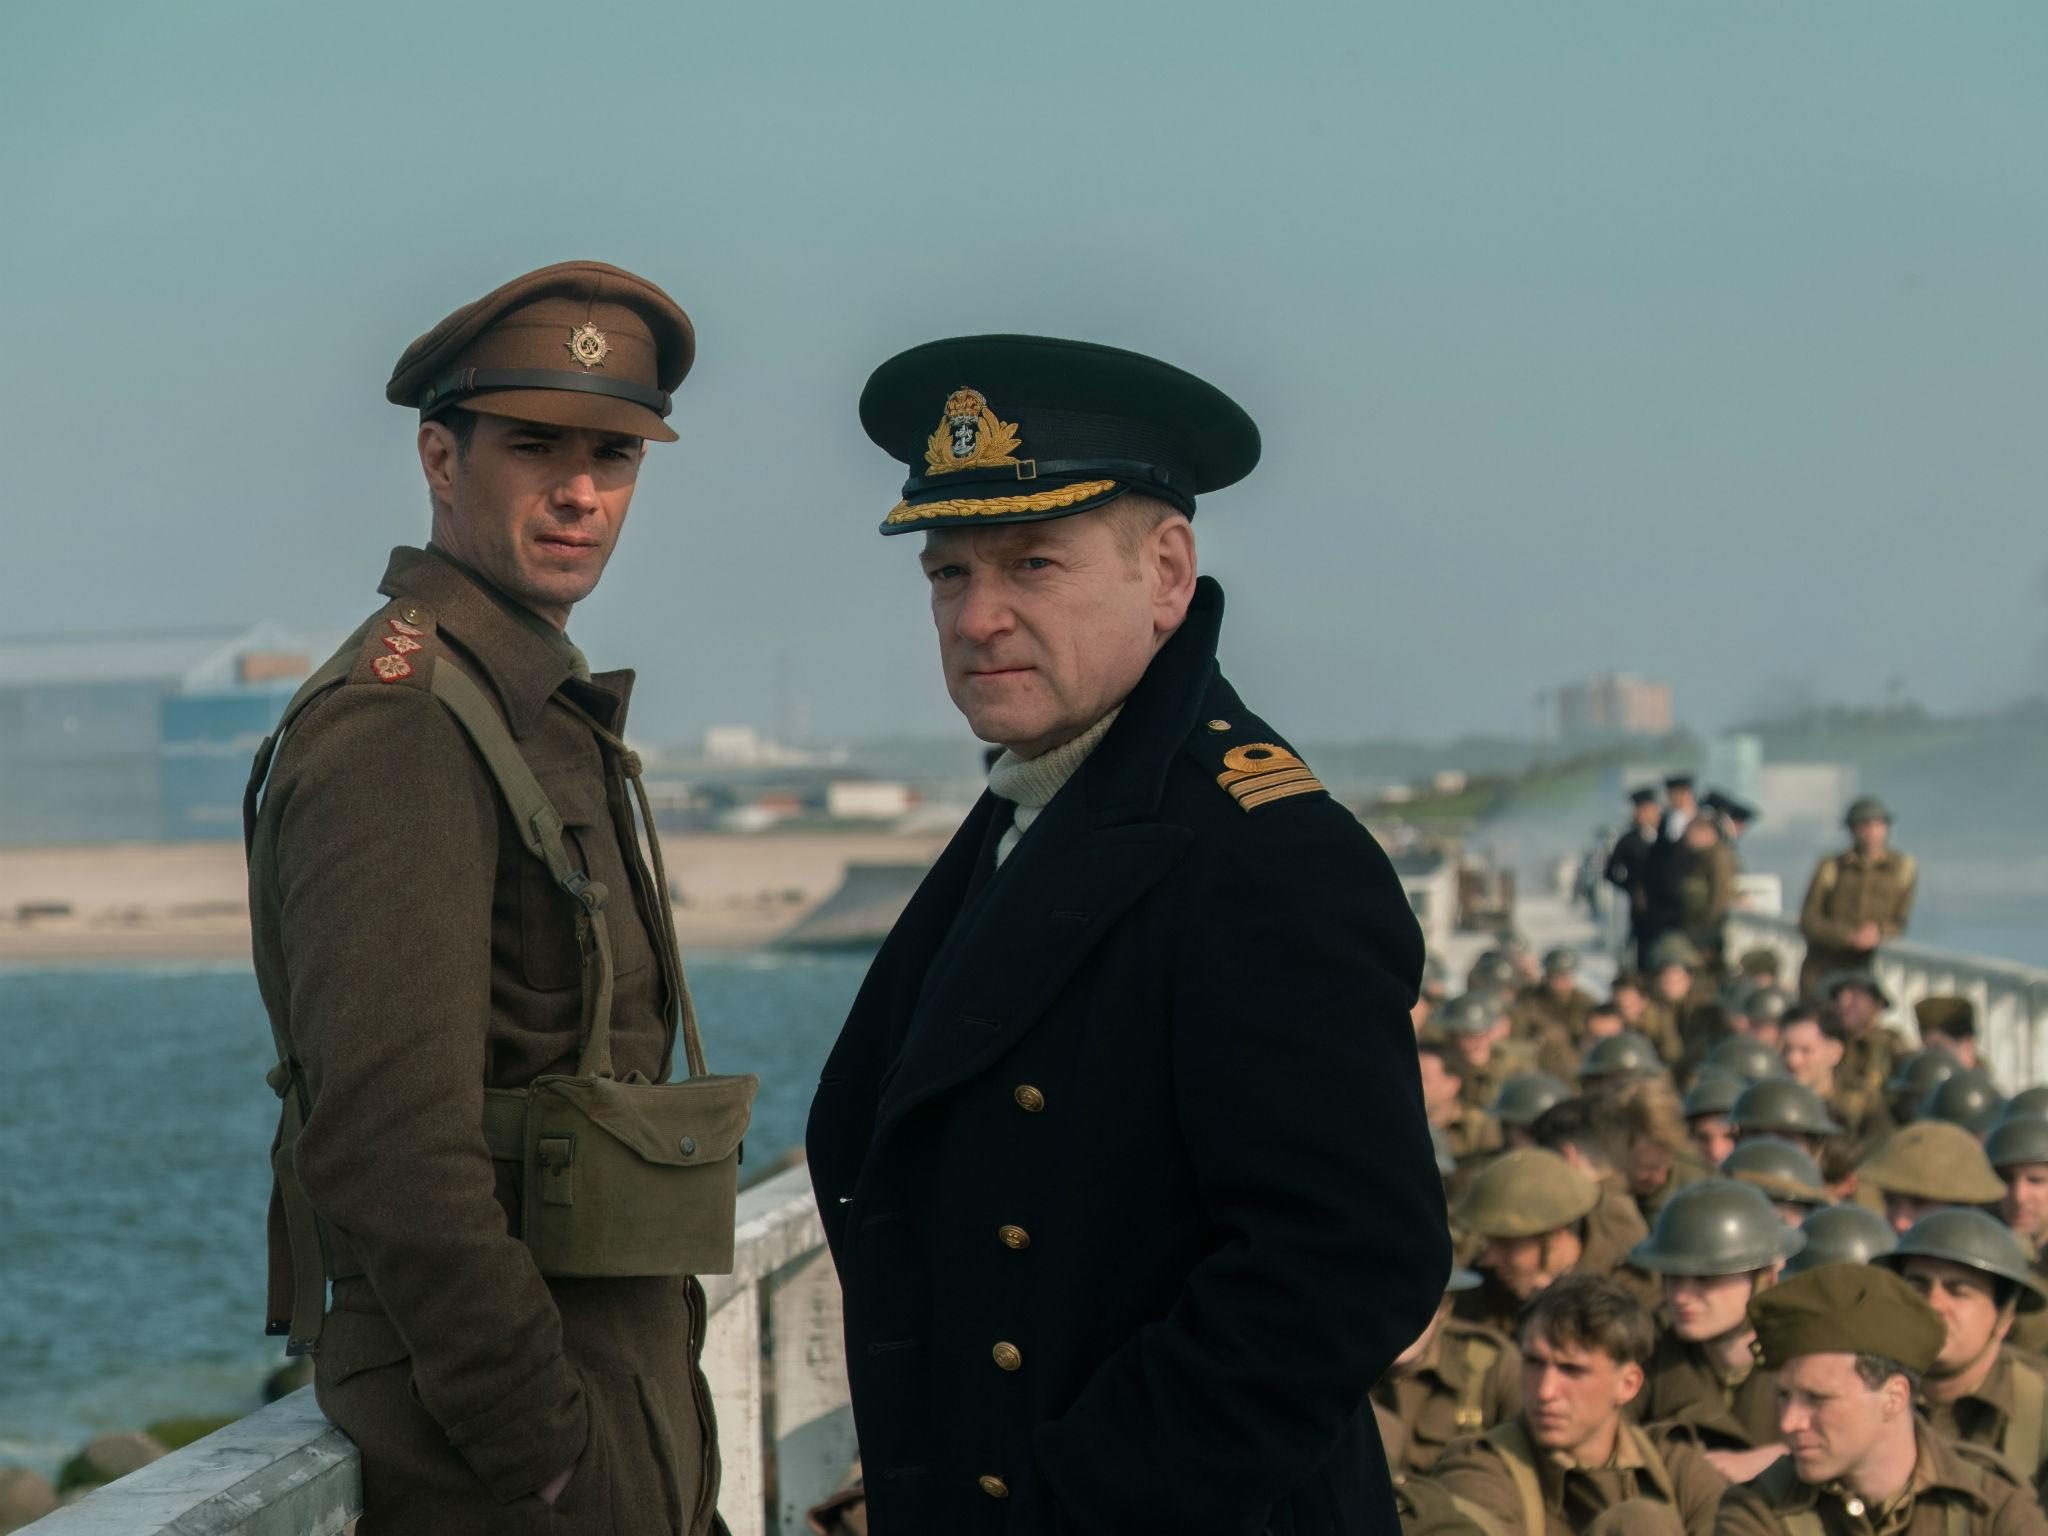 Army color casing ceremony script - When You Watch Dunkirk Remember That It S A Whitewashed Version Which Ignores The Bravery Of Black And Muslim Soldiers The Independent